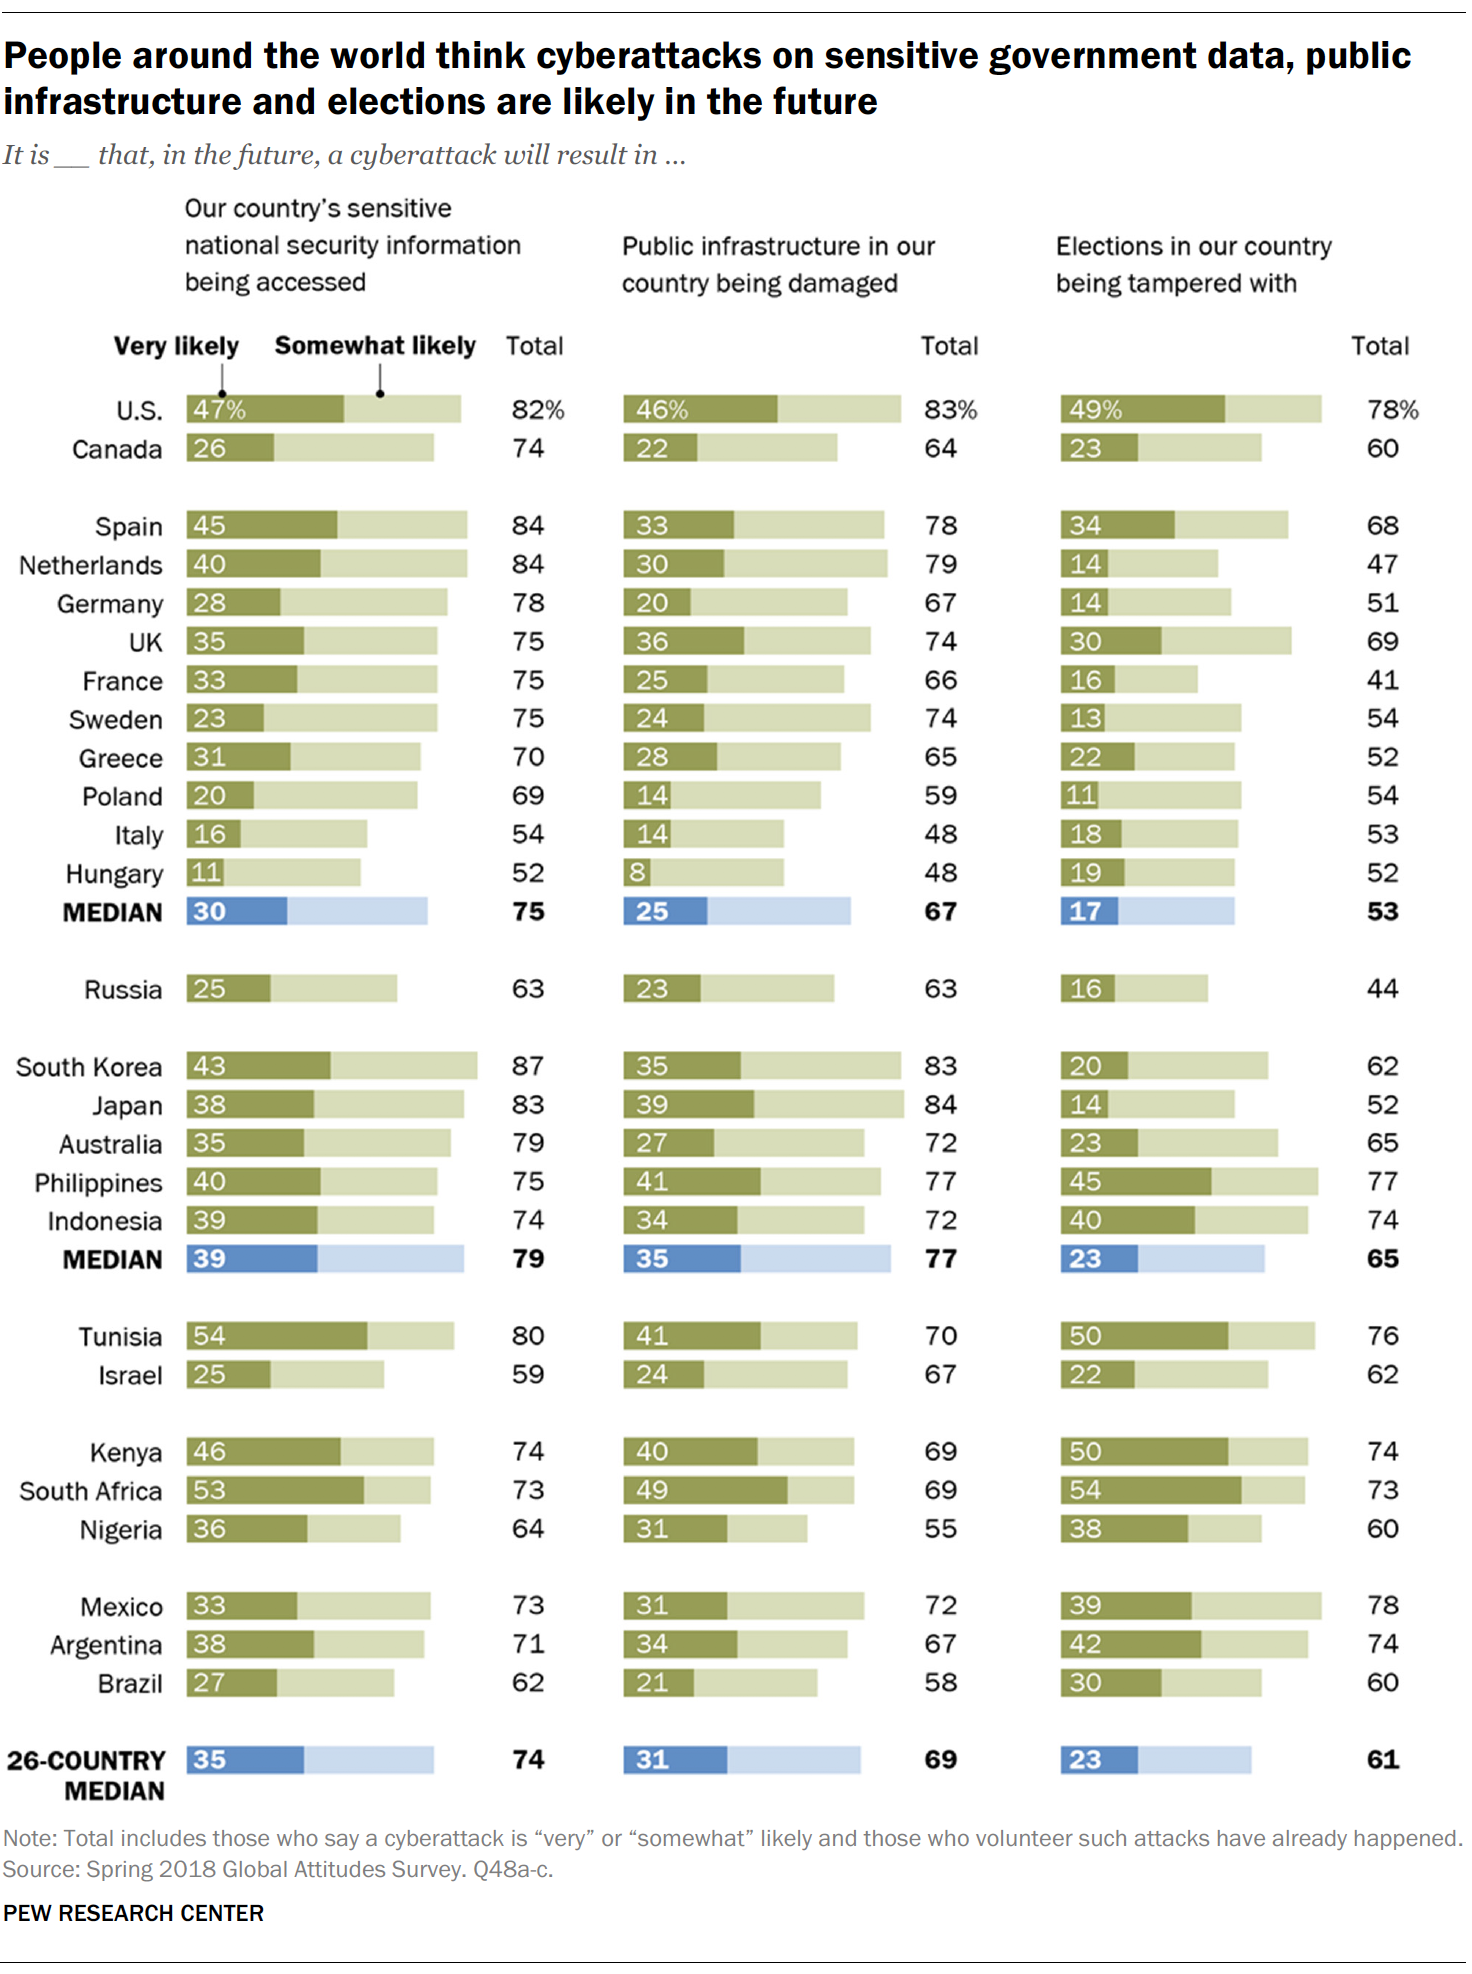 People around the world think cyberattacks on sensitive government data, public infrastructure and elections are likely in the future